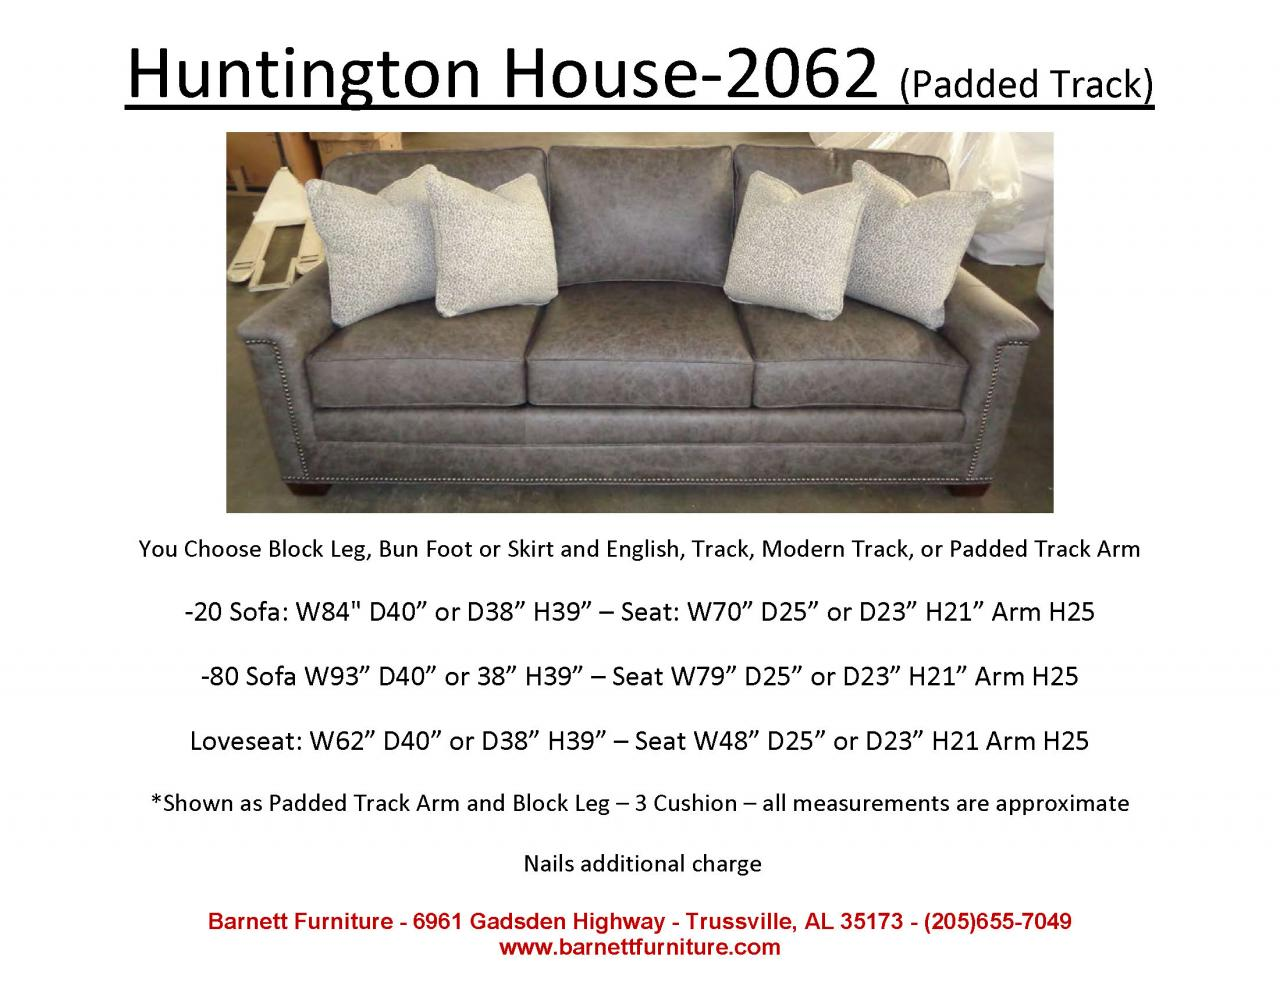 Huntington House Furniture Quality Barnett Furniture Larger Sofas90